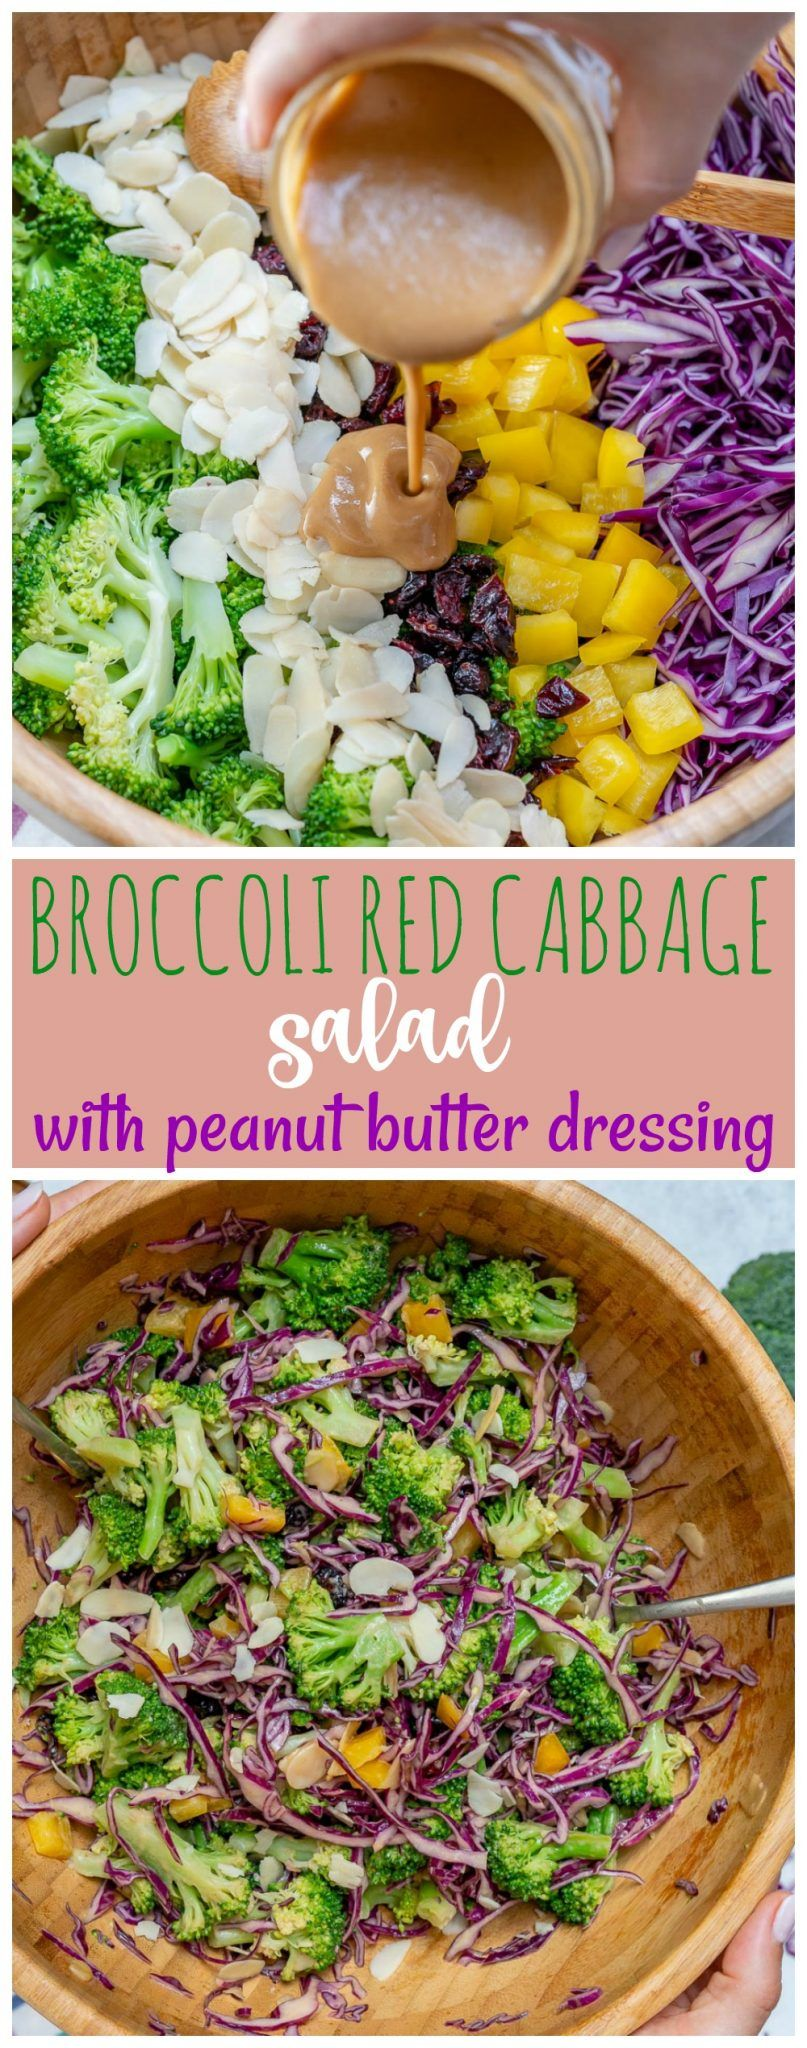 Broccoli + Red Cabbage Salad with Tangy PB Dressing #cleaneating